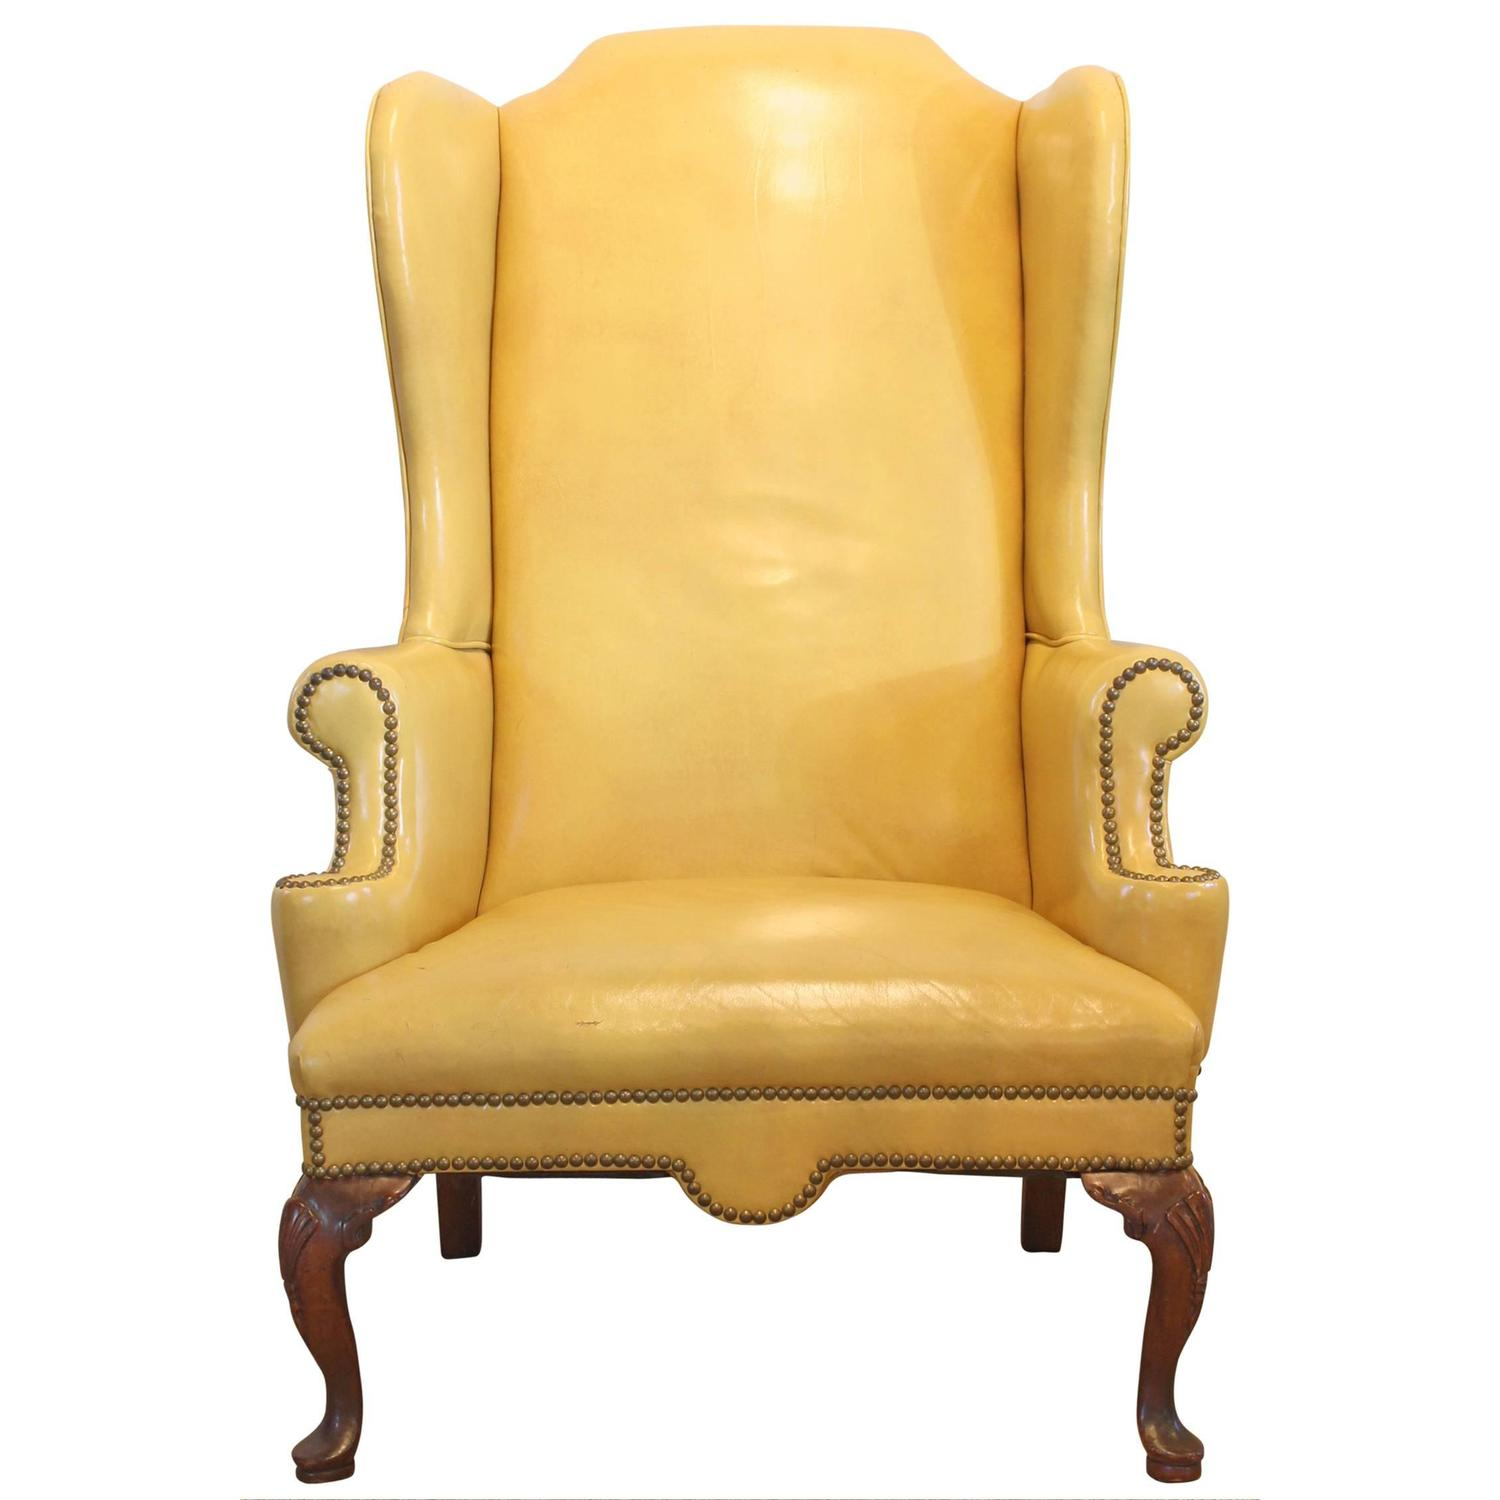 Mustard Yellow Leather Wing Chair at 1stdibs